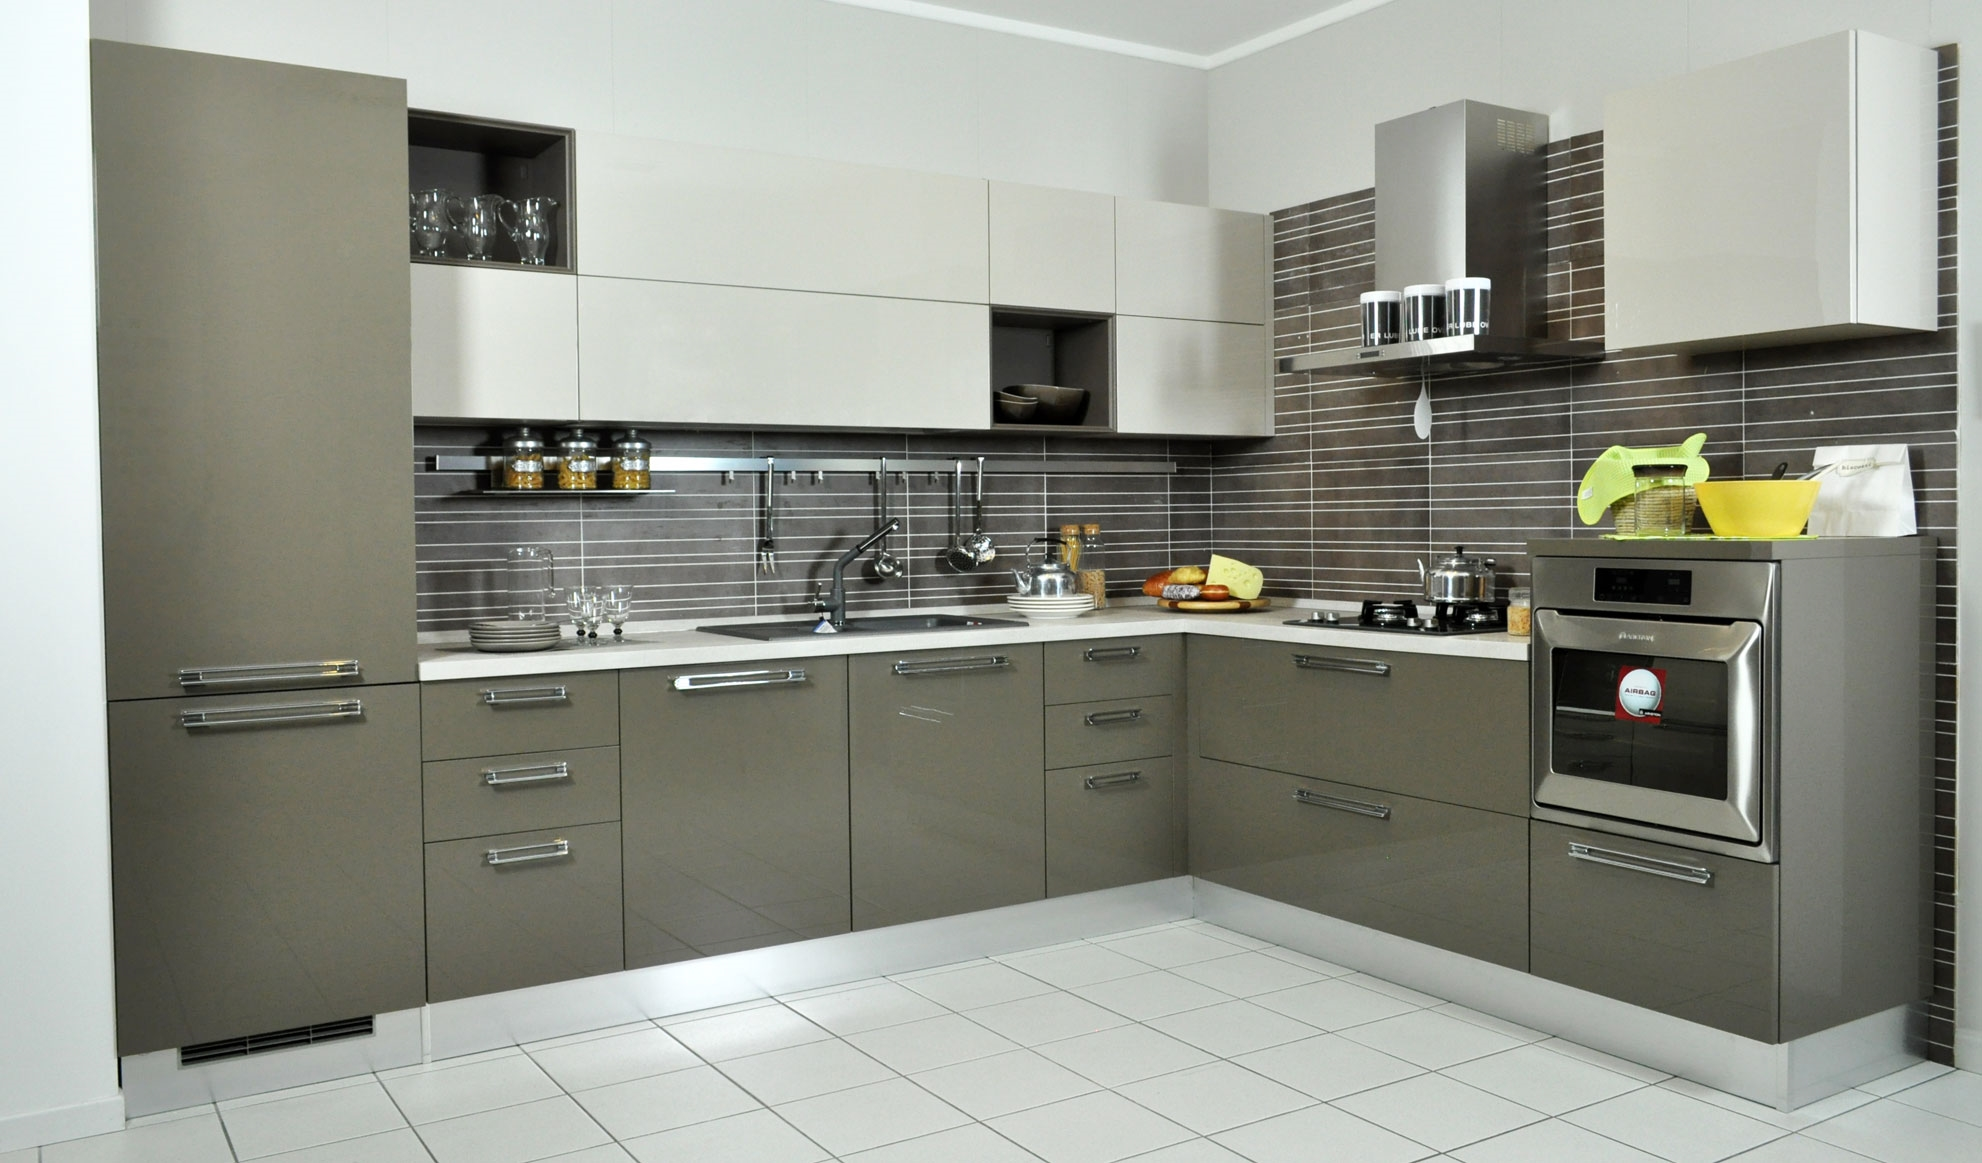 Misure Angoli Cucine. Simple Free Mondo Convenienza Cucine Colorate ...